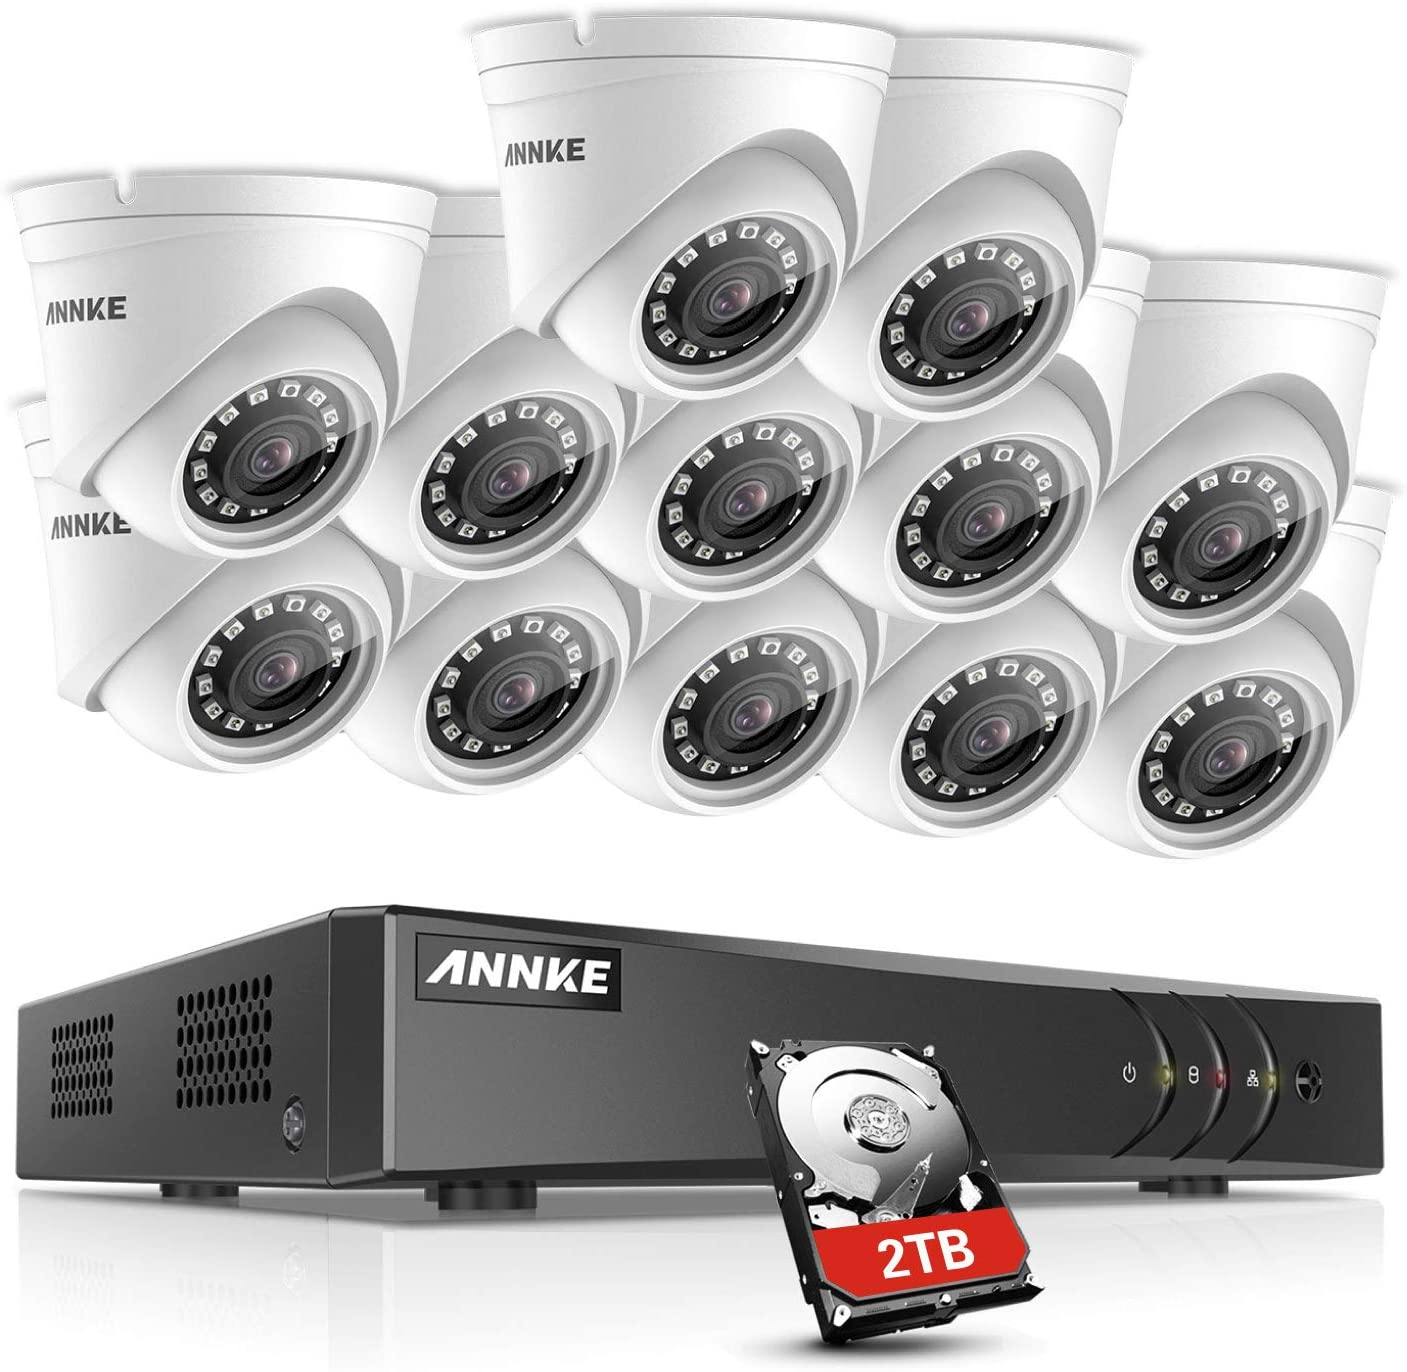 ANNKE 16-Channel 1080P Lite Video Security System DVR with 2TB Hard Drive and 12 HD 1080P Indoor Outdoor Cameras with IP66 Weatherproof Housing, 66ft Super Night Vision